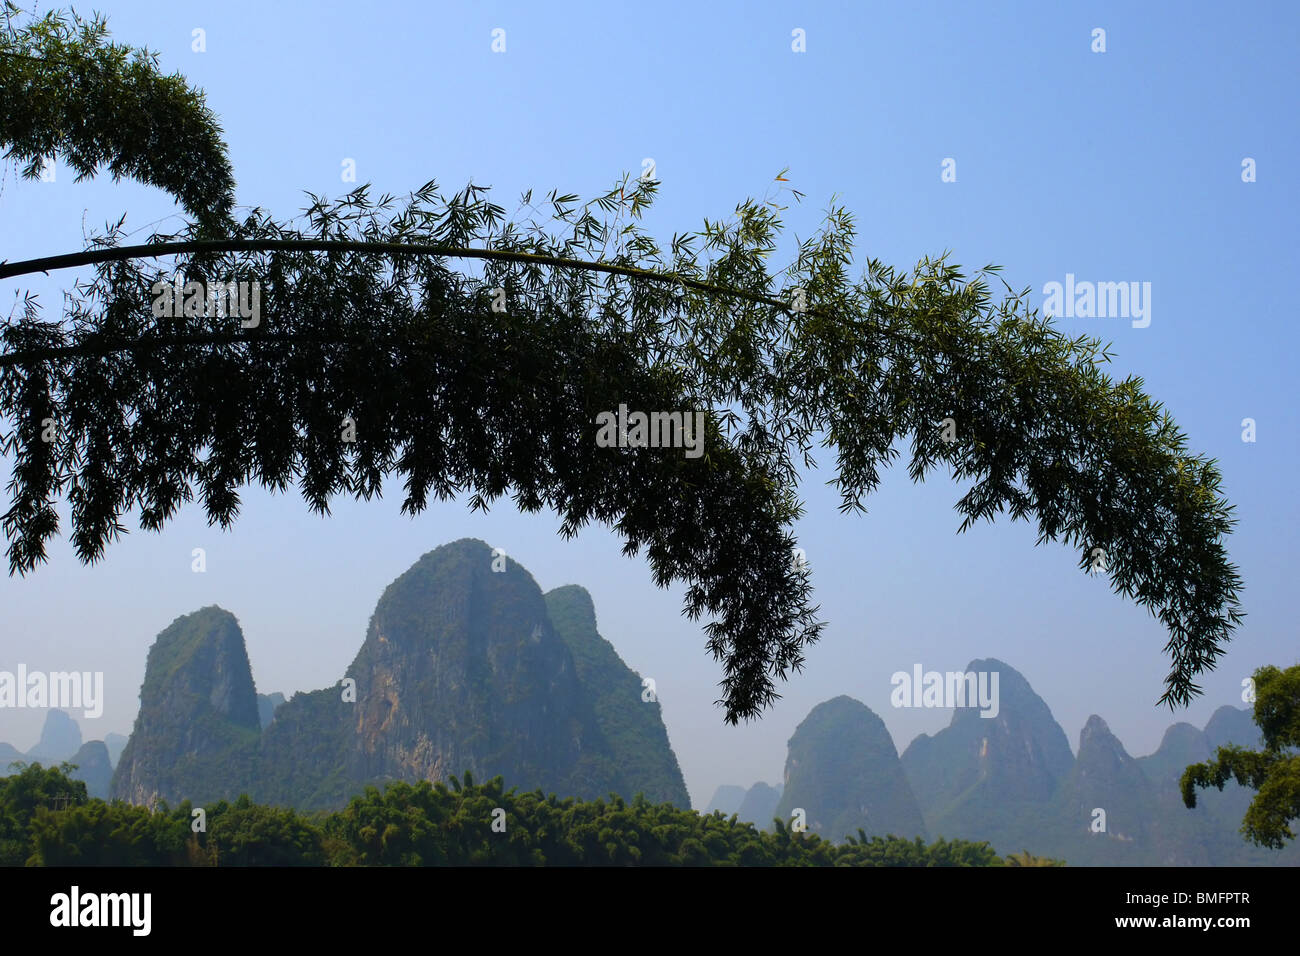 Rural landscape of Yangshuo town outskirts, Guangxi Province, Guilin area, China Stock Photo